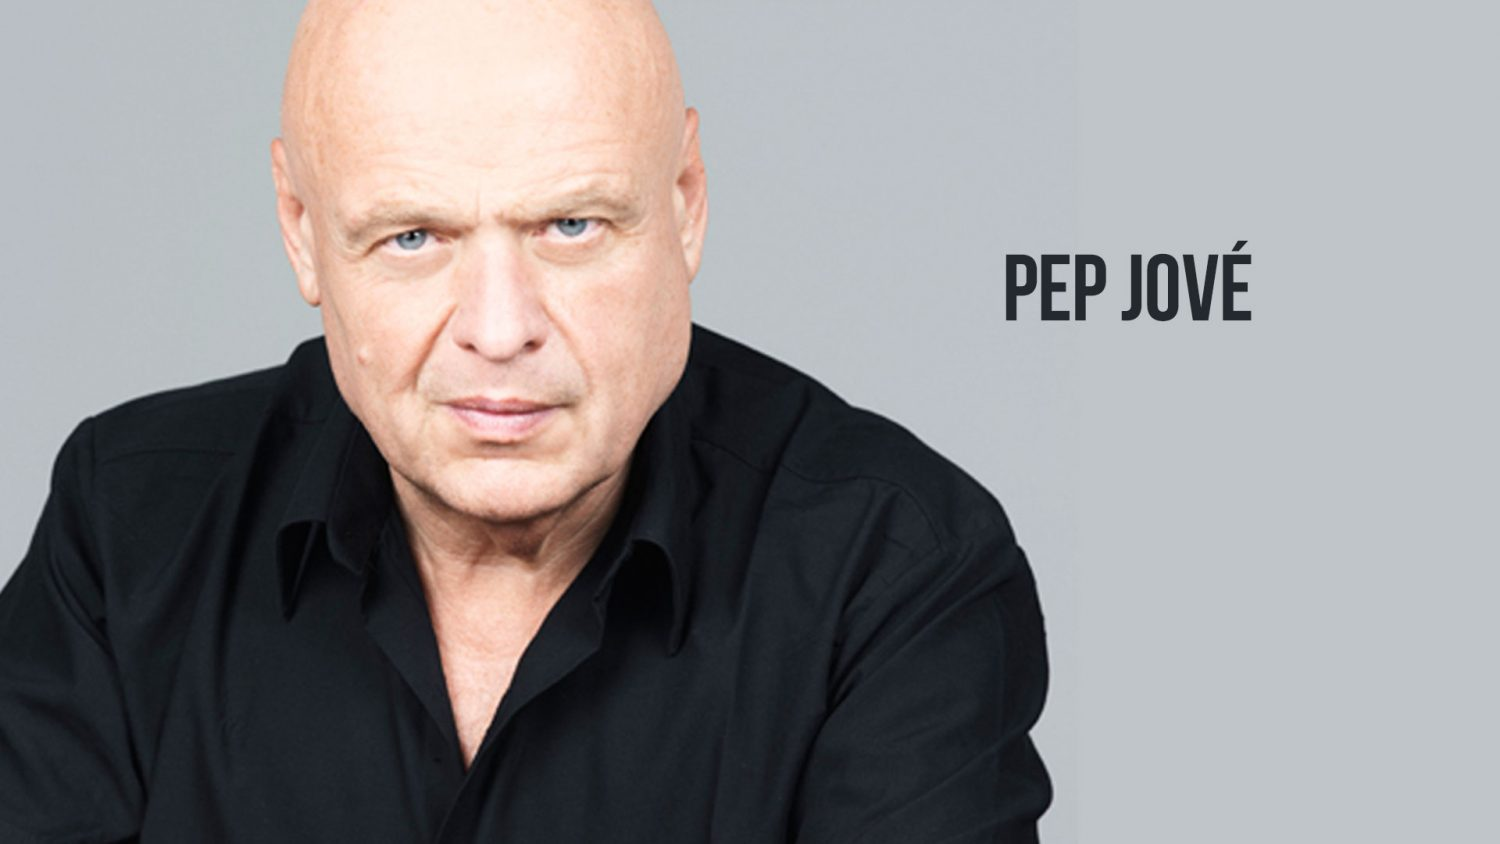 Pep Jové - Videobook Actor